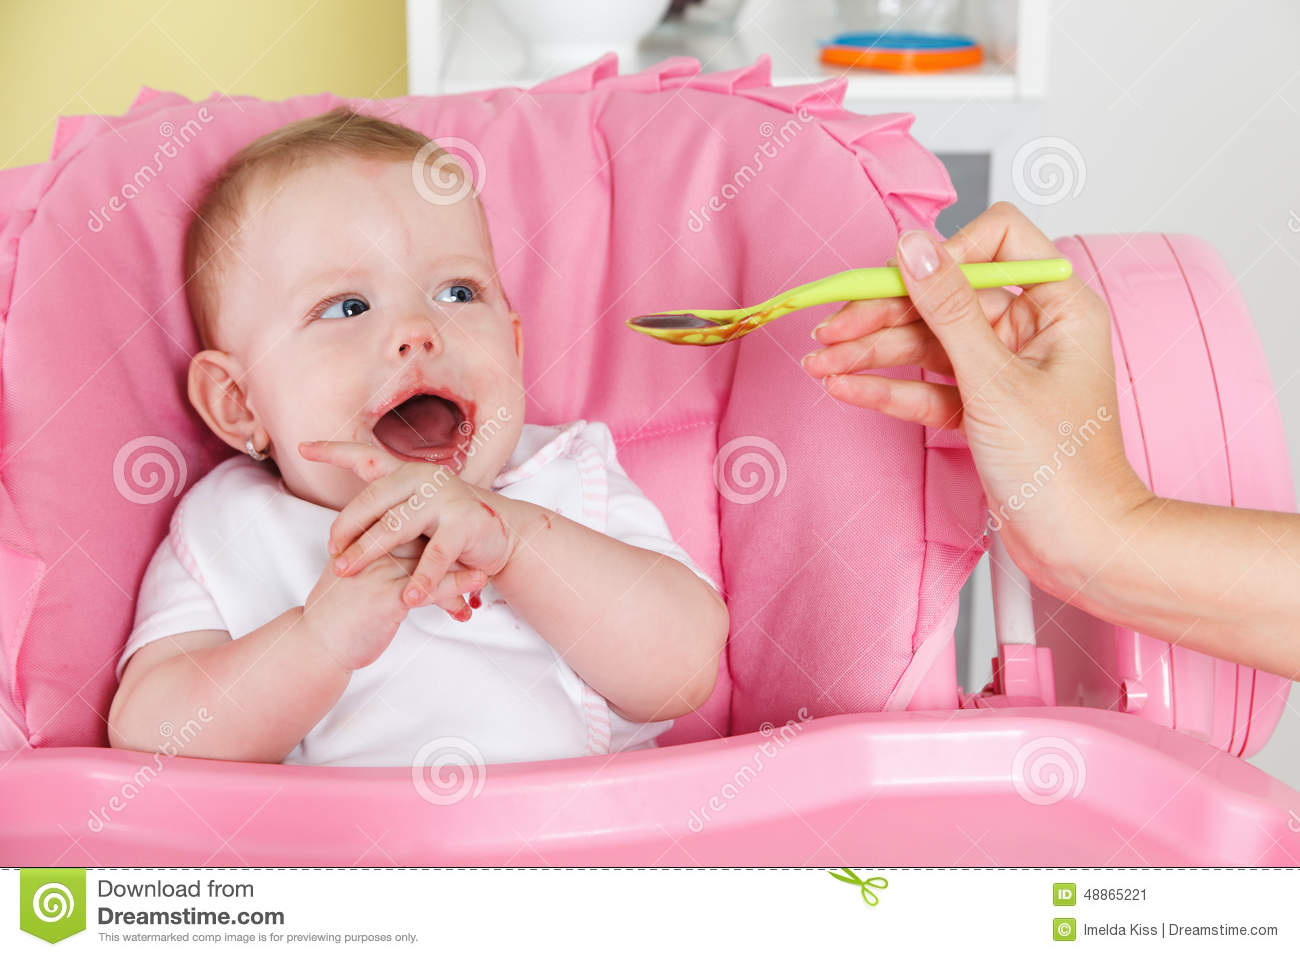 Baby Food Chair Happy Baby Eating Stock Image Image Of High Food Chair